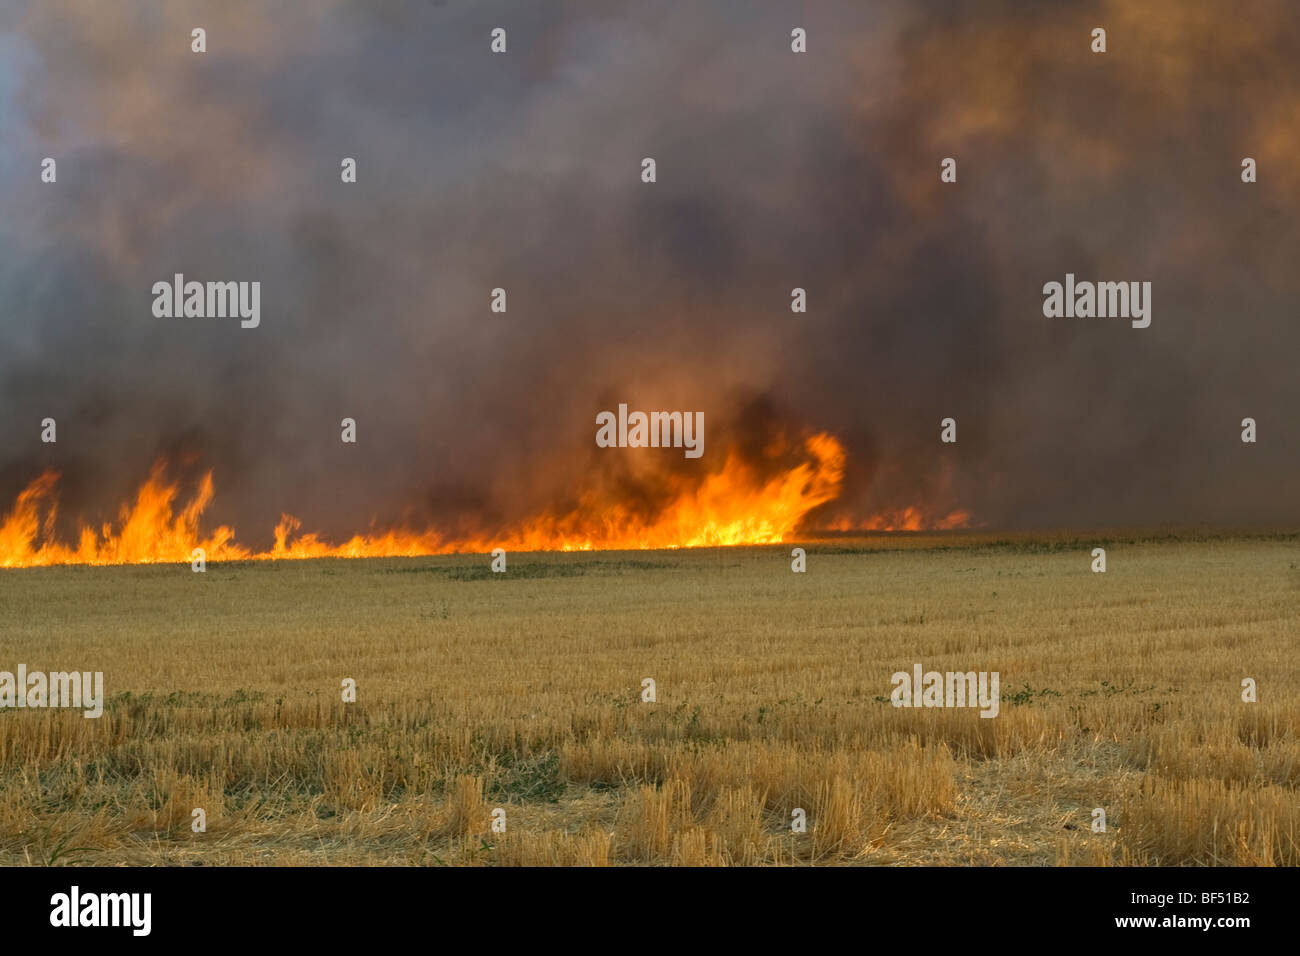 Wheat stubble being burned after the harvest to control diseases, reduce weed competition and to make the next planting Stock Photo